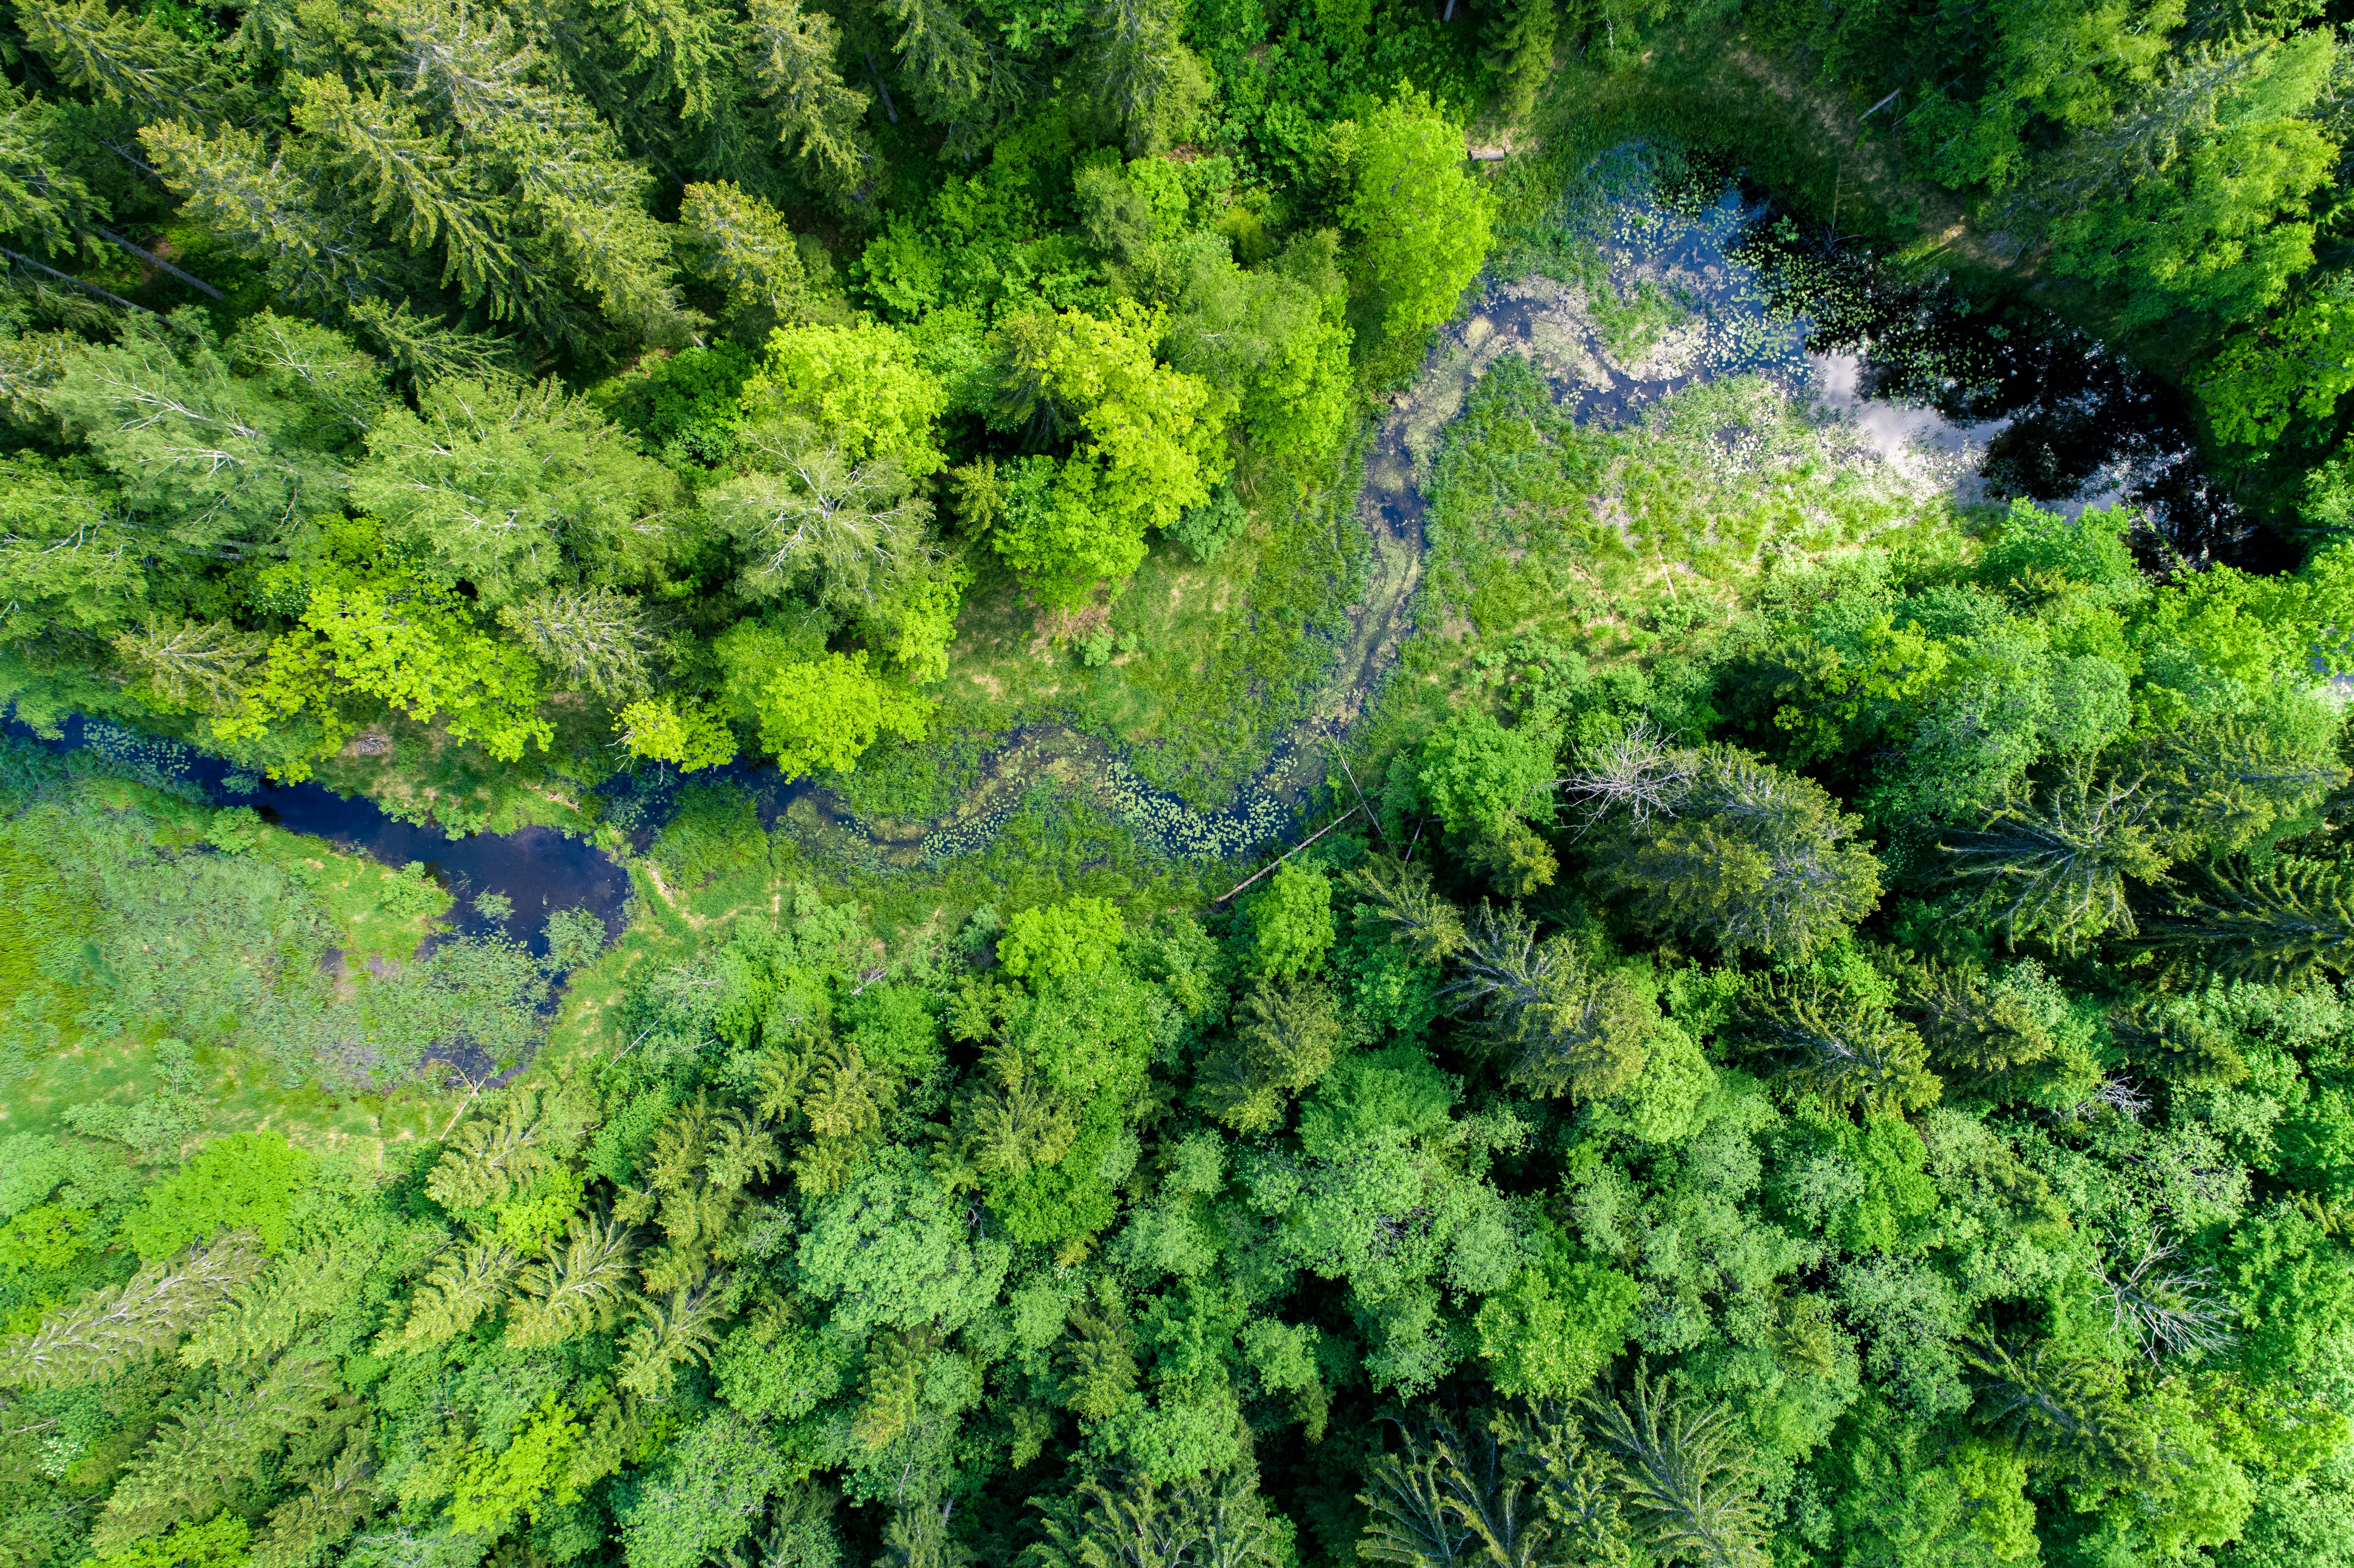 Green forest, swamp and small river captured from above with a drone. - Image